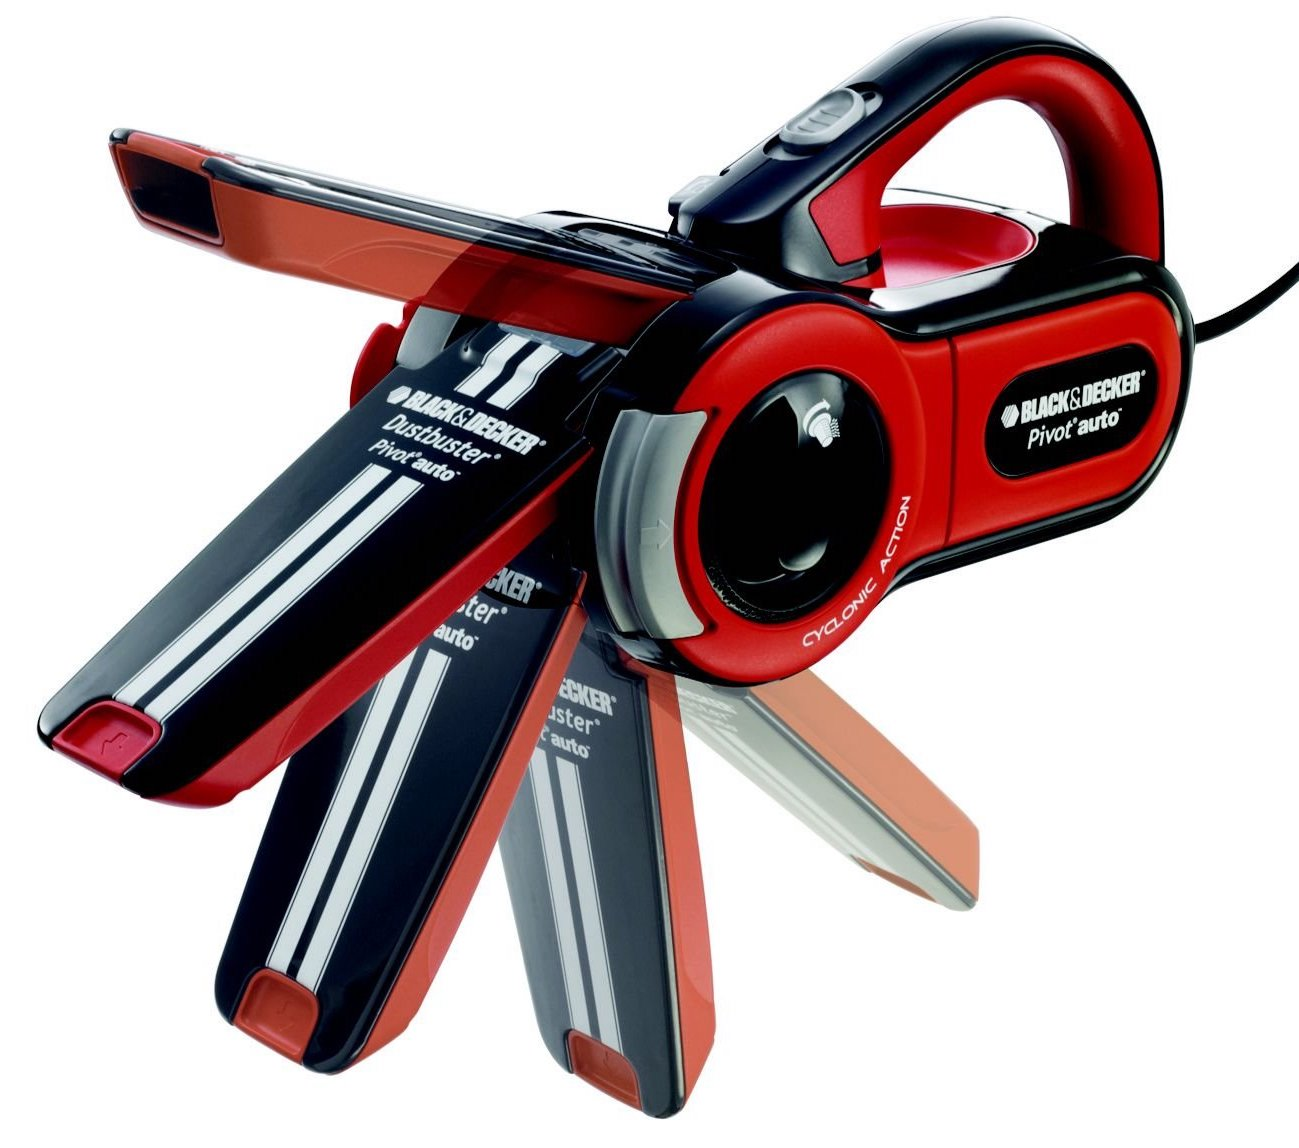 aspirador de mano black and decker